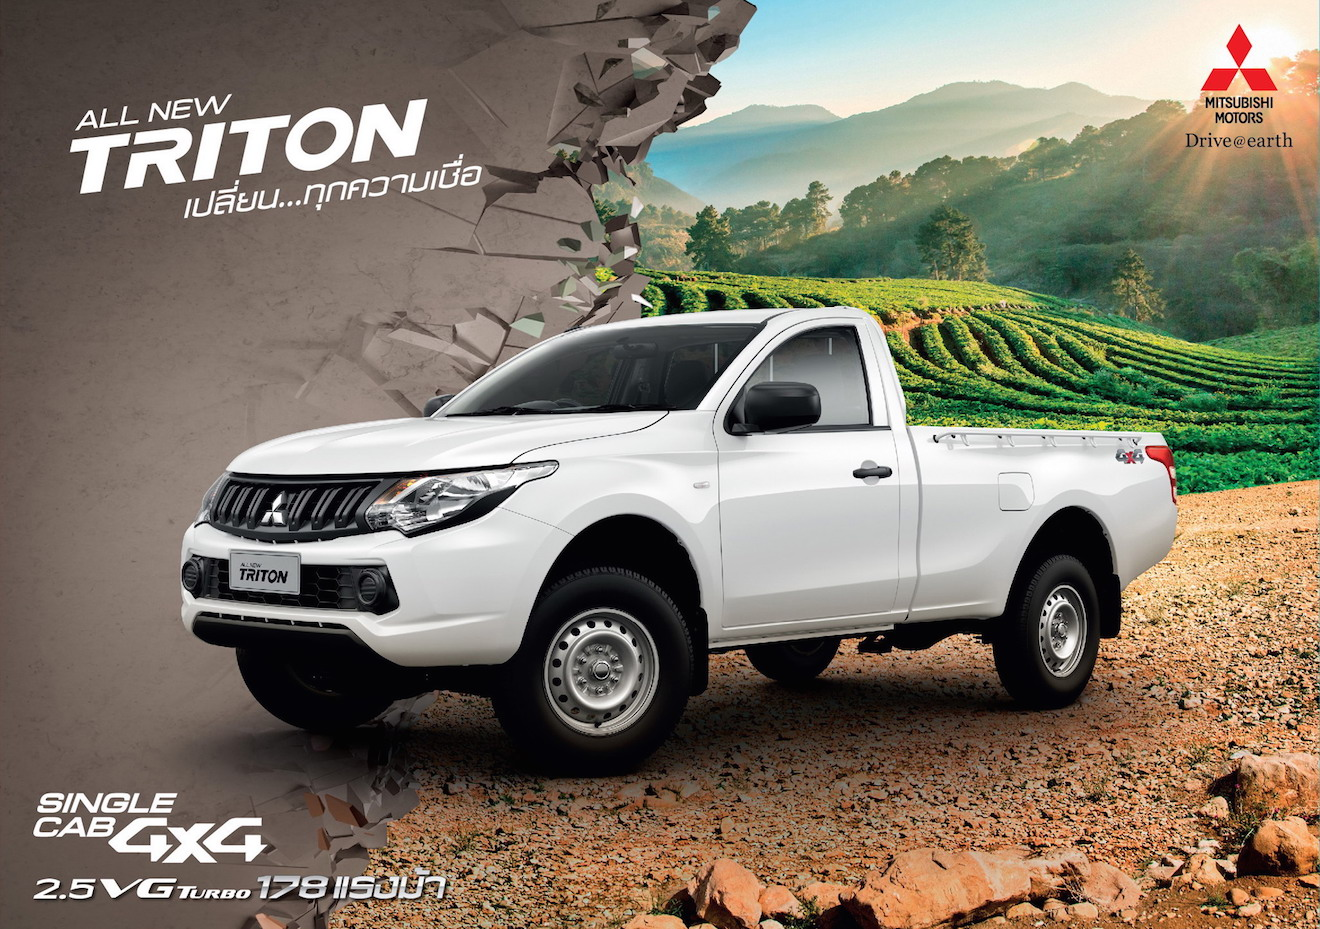 Mitsubishi Motors Launches All New Triton Pick Up Truck In